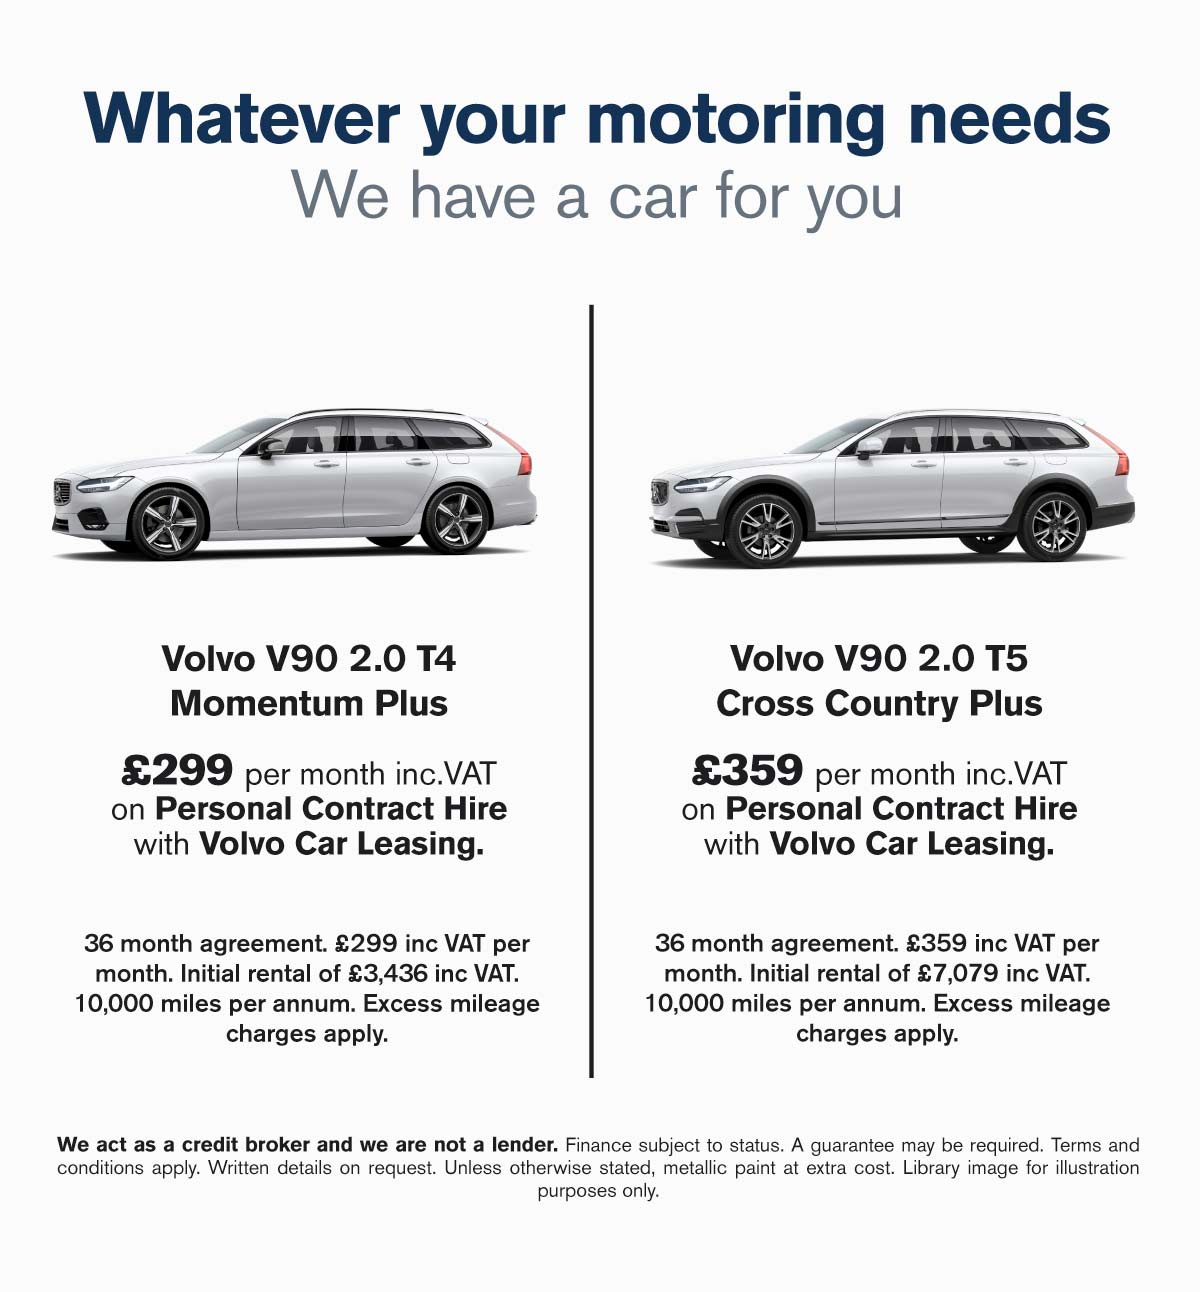 [Volvo V90] Volvo V90 Two Offers 080719 Banner 1